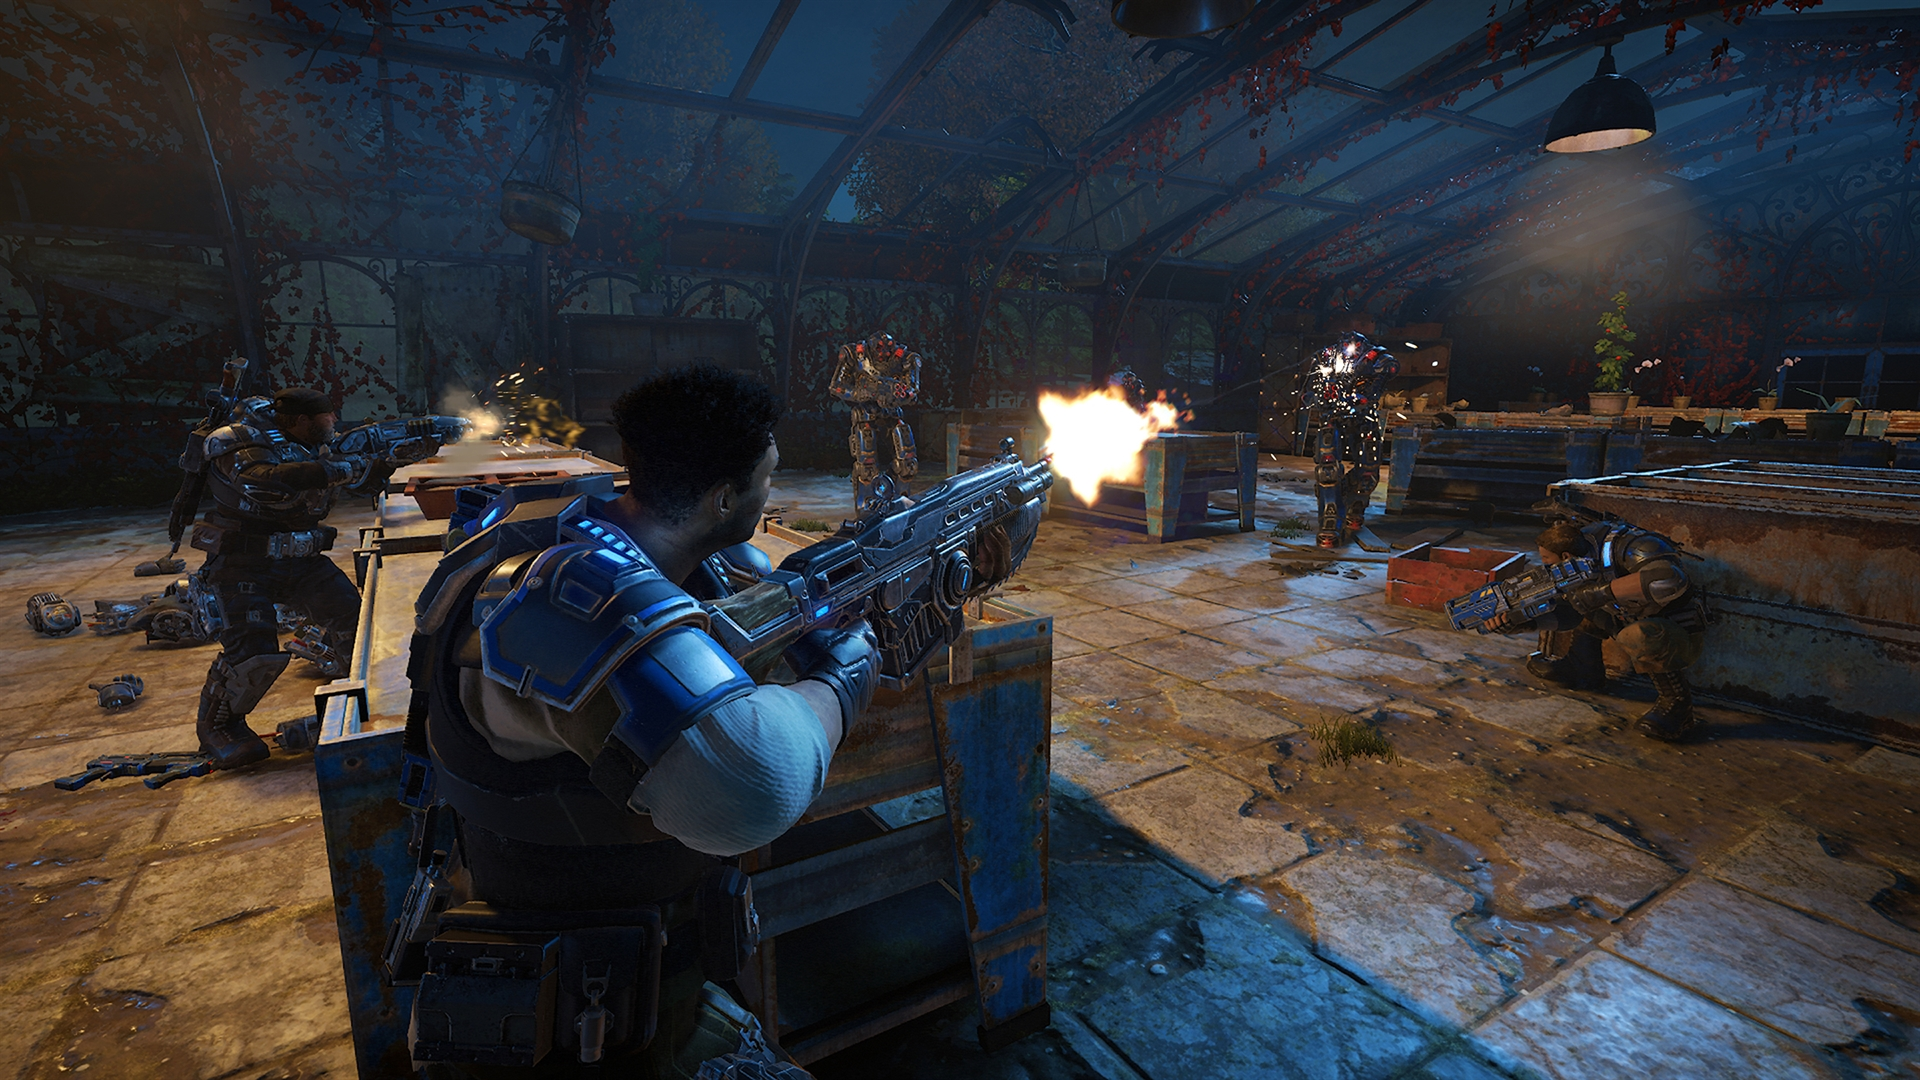 New Gears Of War 4 Screenshots Gt GamersBook